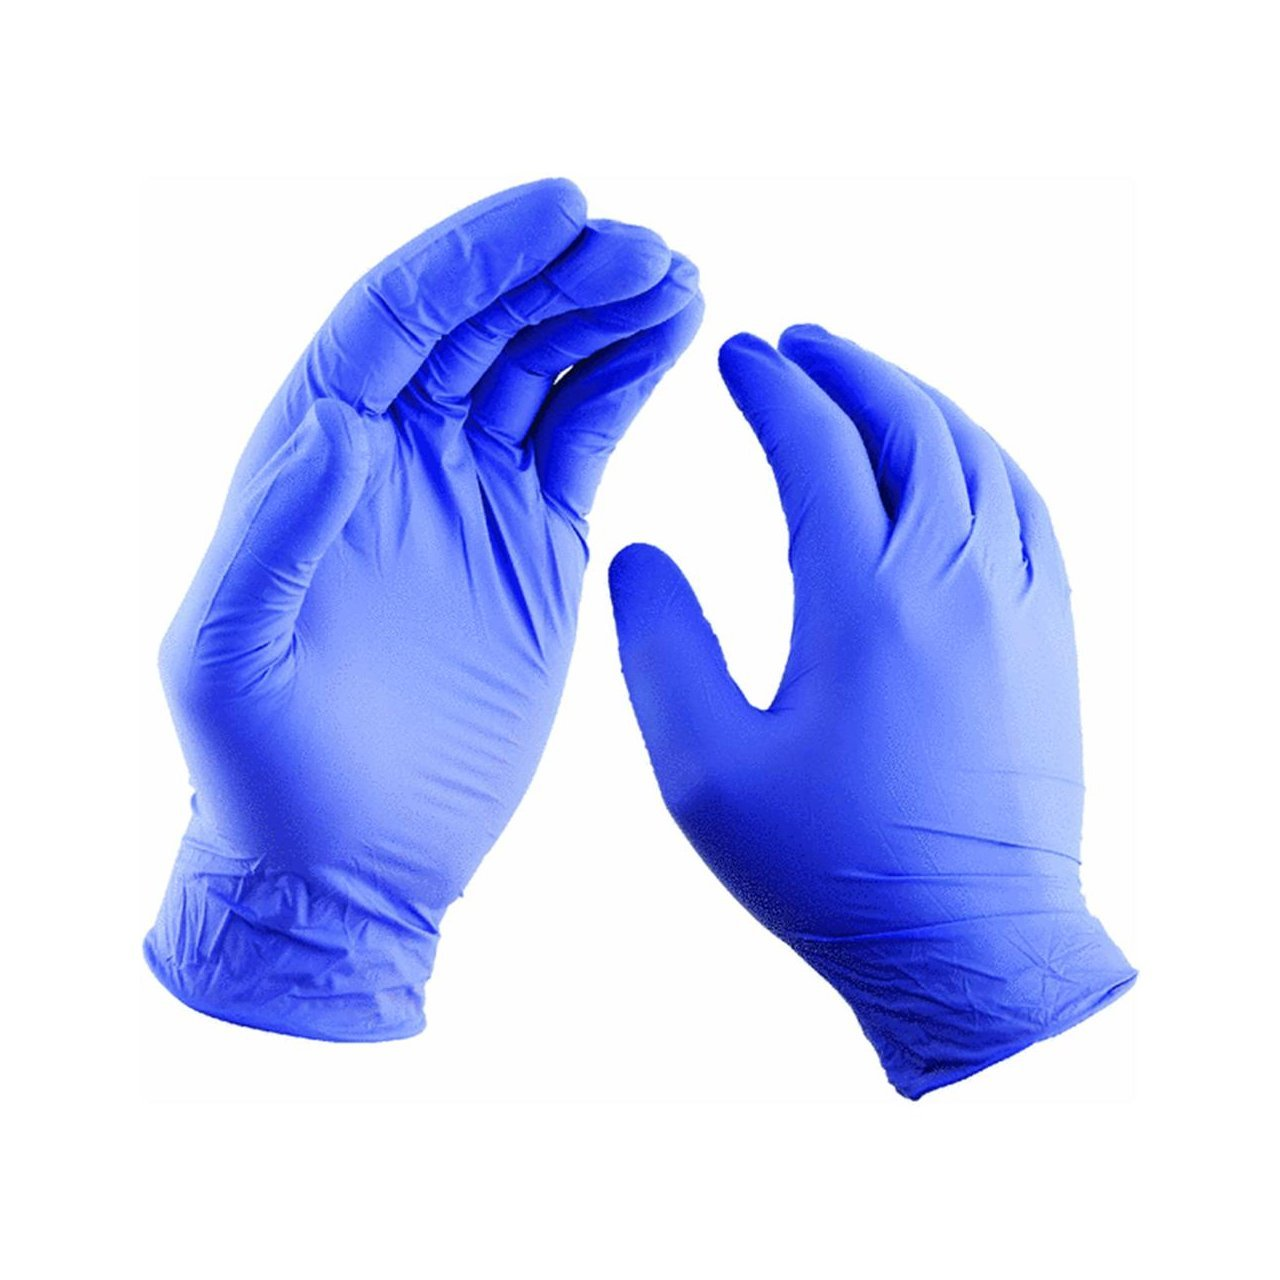 76191 Latex Gloves, Lightly powdered for easy on and off By Lehigh Spontex